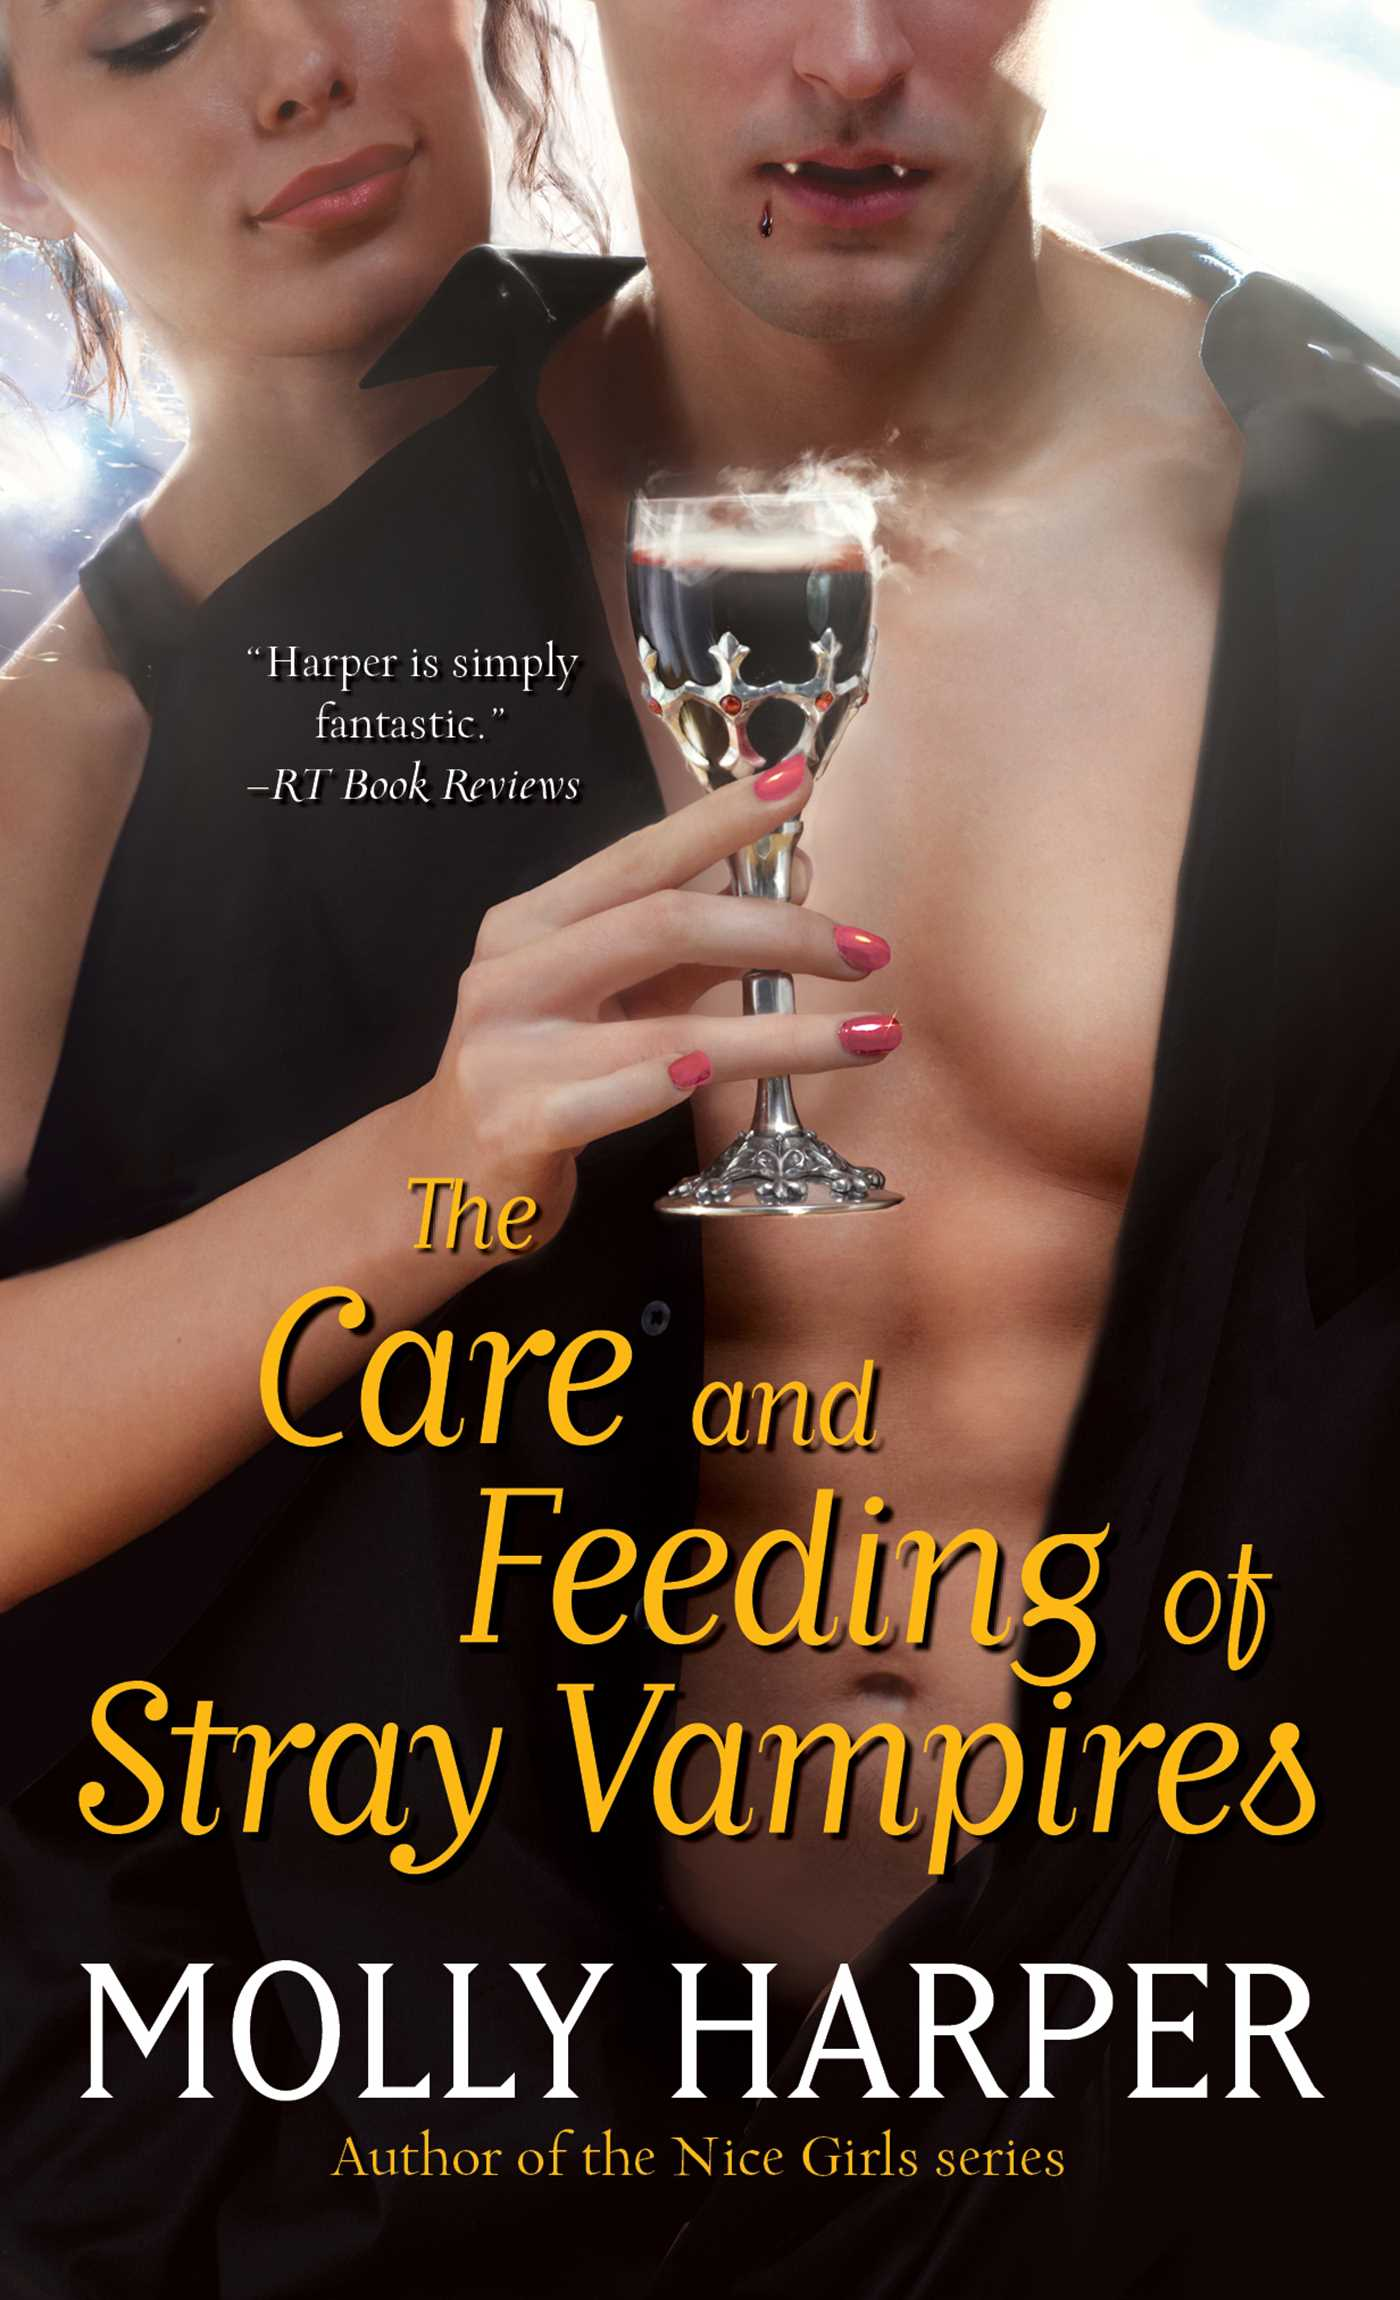 The care and feeding of stray vampires 9781451641875 hr